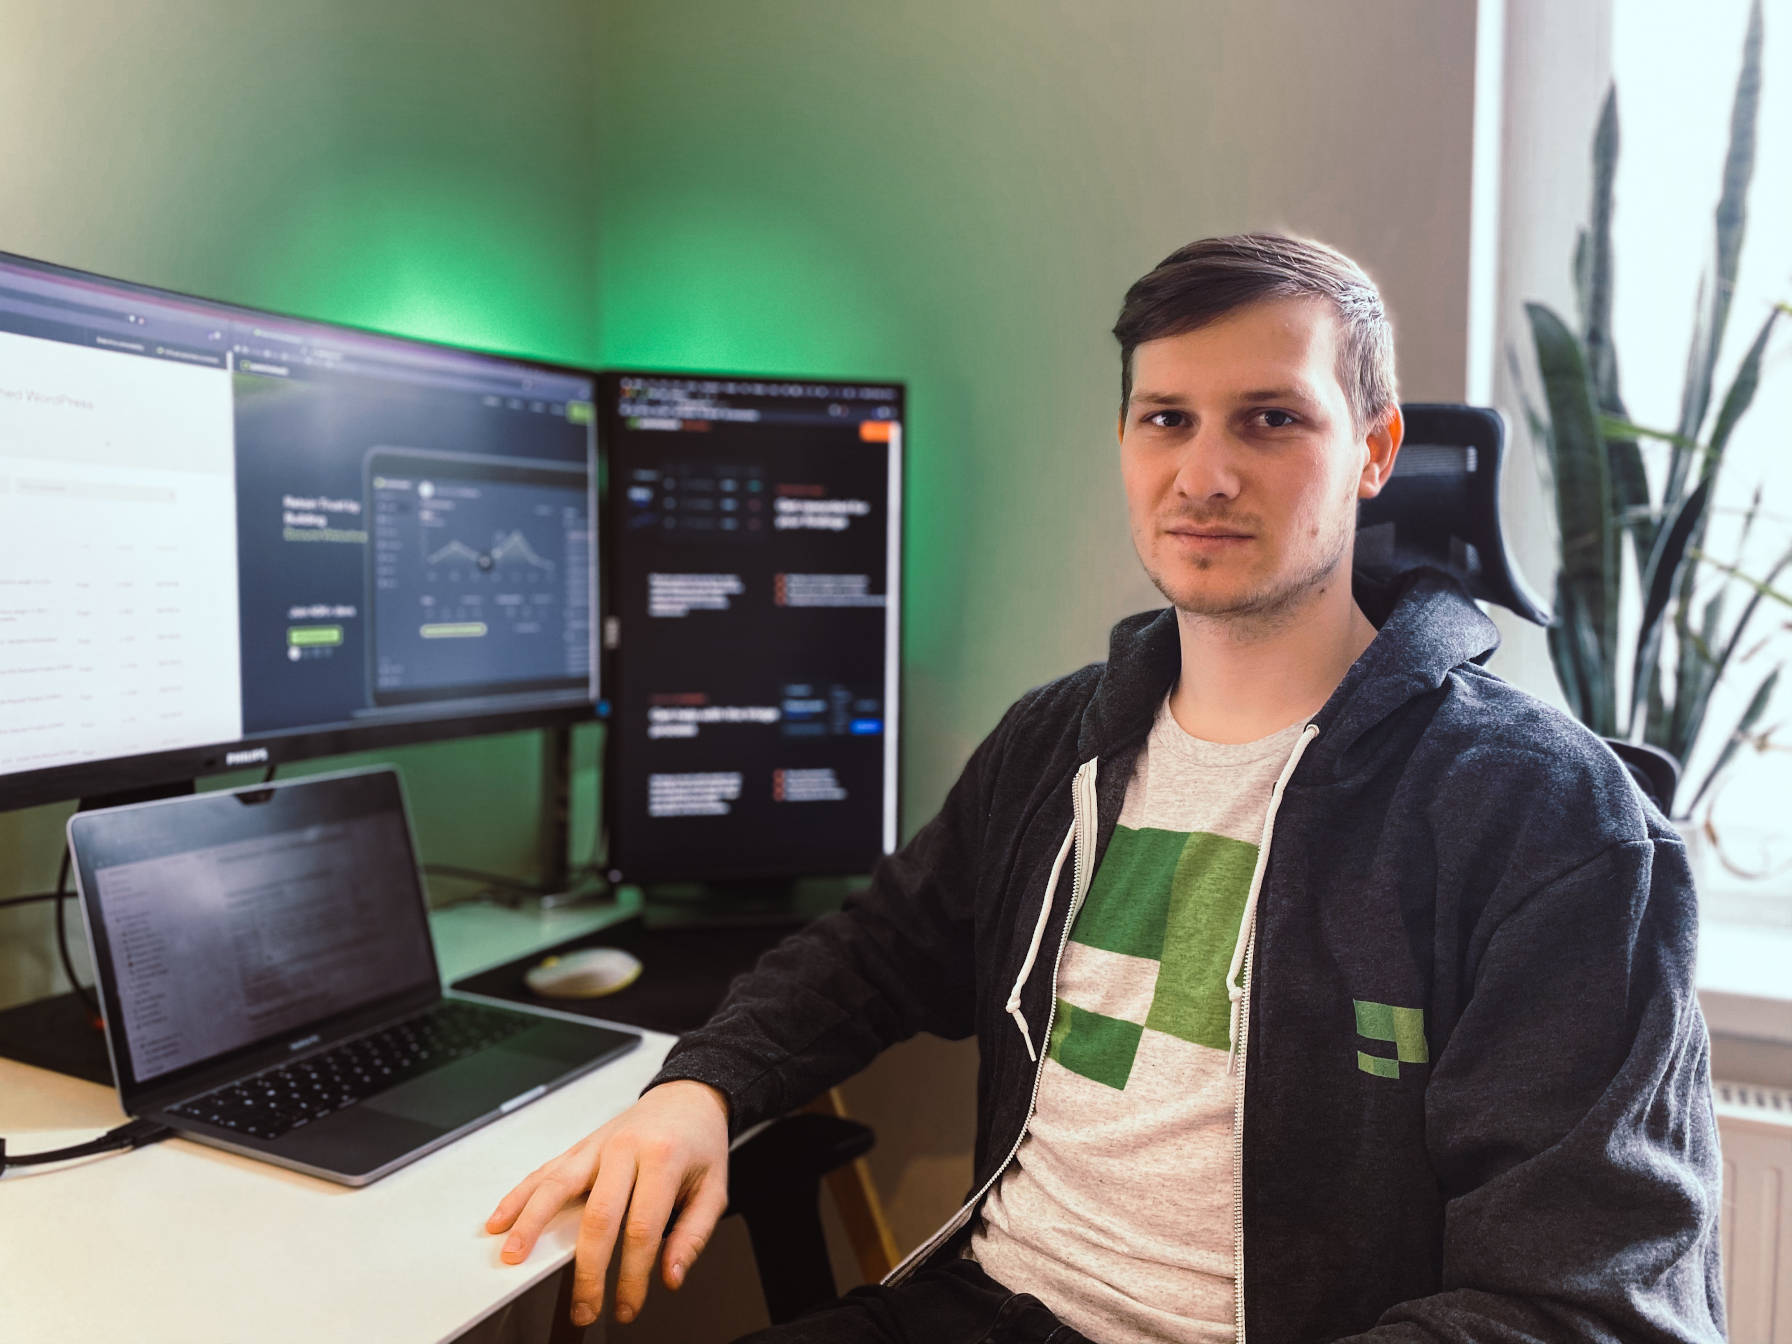 Patchstack founder and CEO, Oliver Sild, sitting at a desk with laptop and monitors.